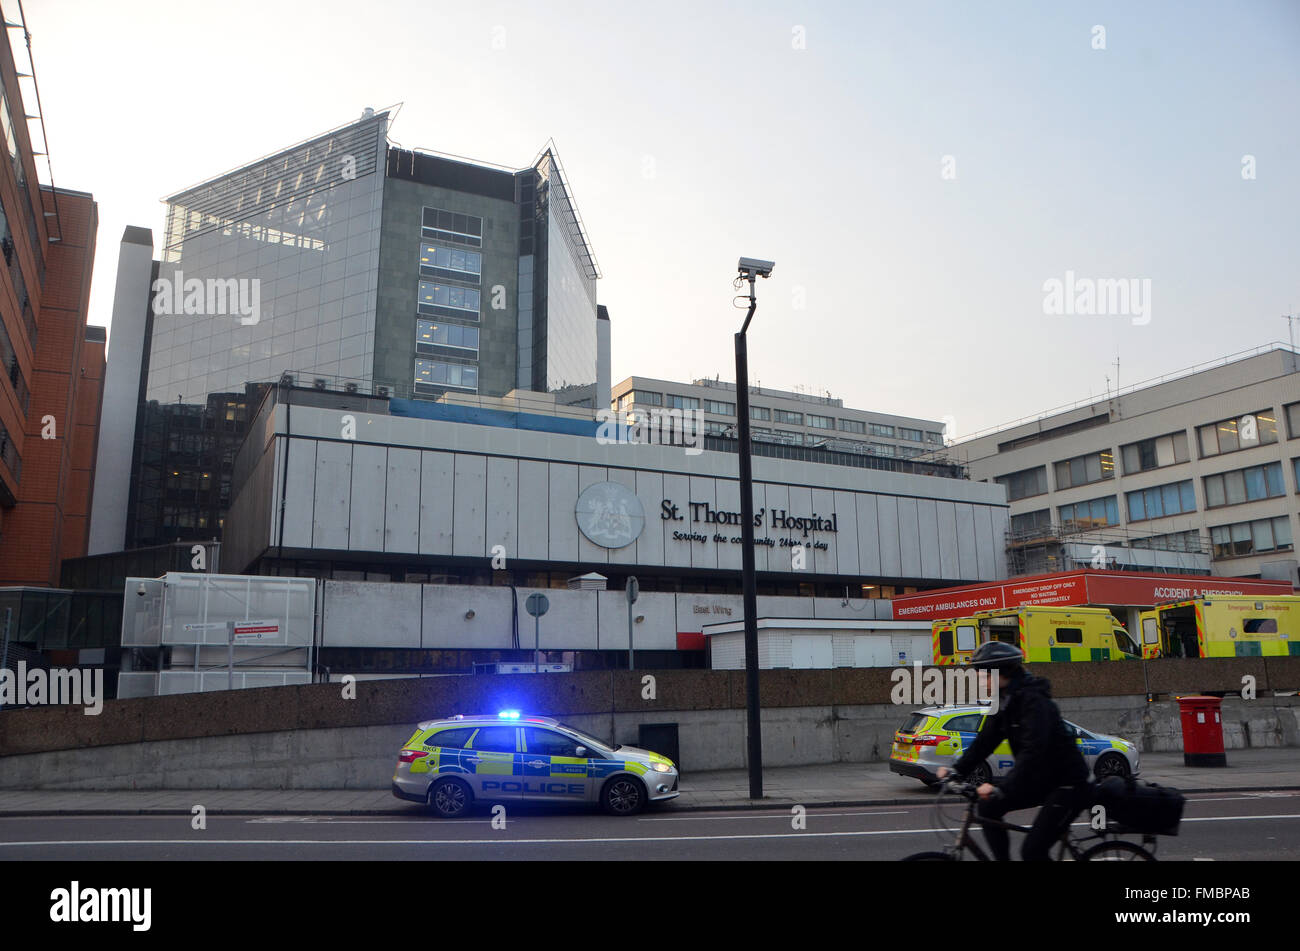 London, UK, 11 March 2016, St Thomas' Hospital on Westminster Bridge Lambeth on the south bank of the Thames - Stock Image